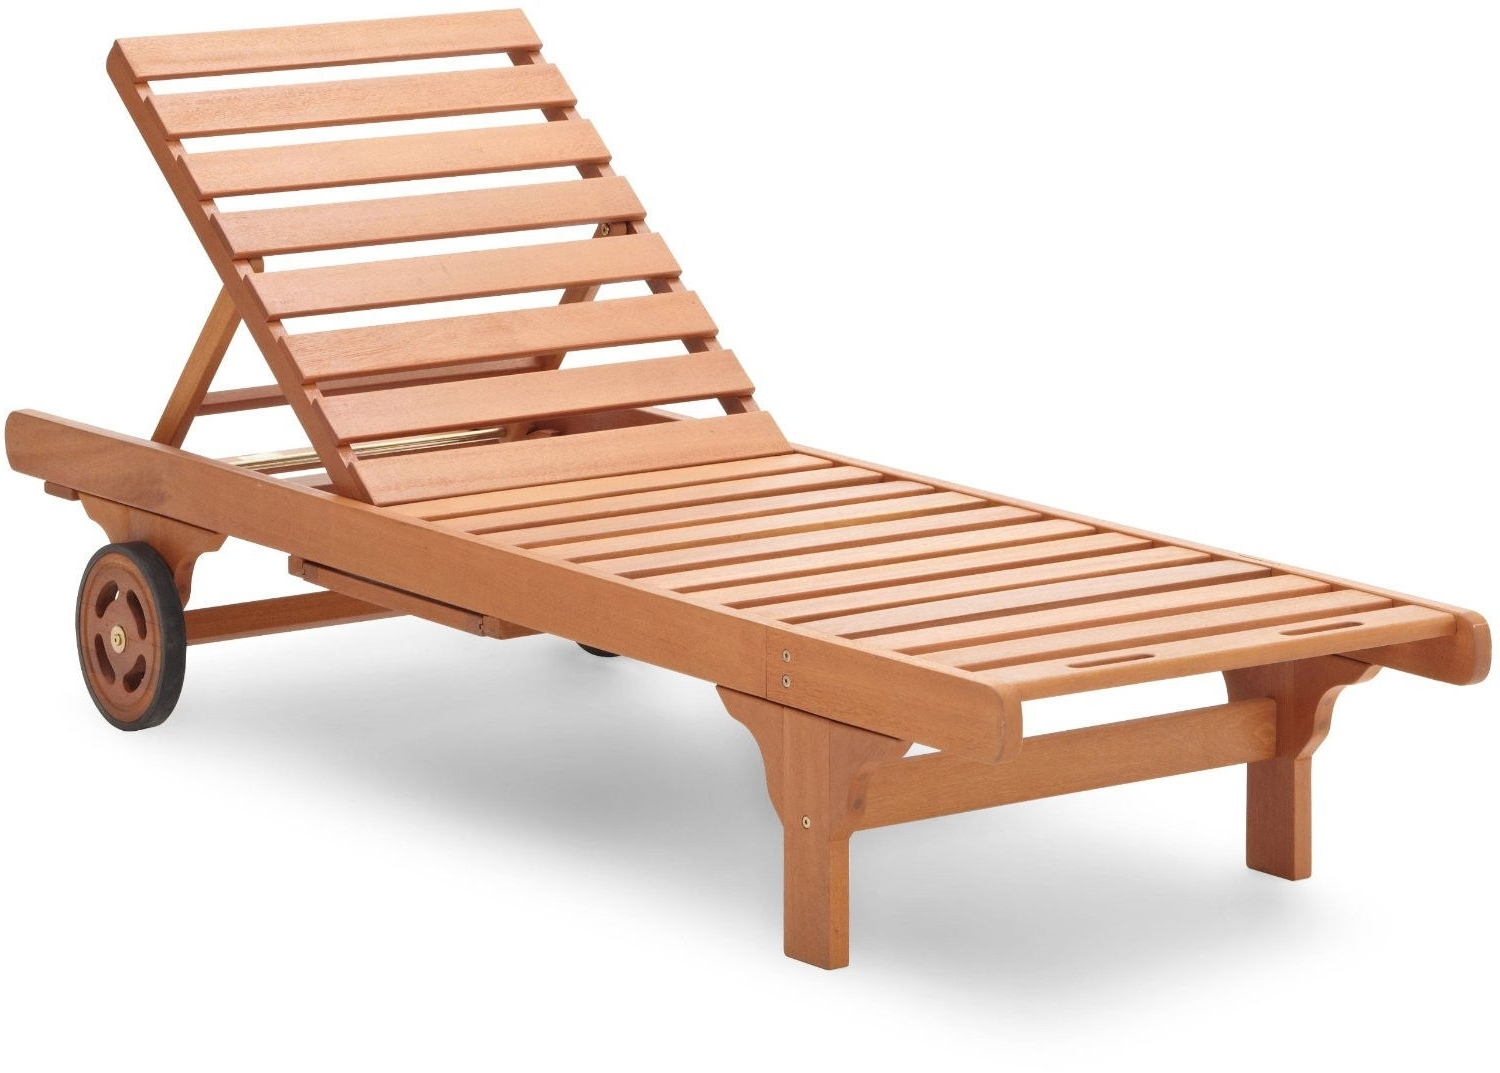 Newest Lakeport Outdoor Adjustable Chaise Lounge Chairs For Wood Chaise Lounge Chairs • Lounge Chairs Ideas (View 12 of 15)